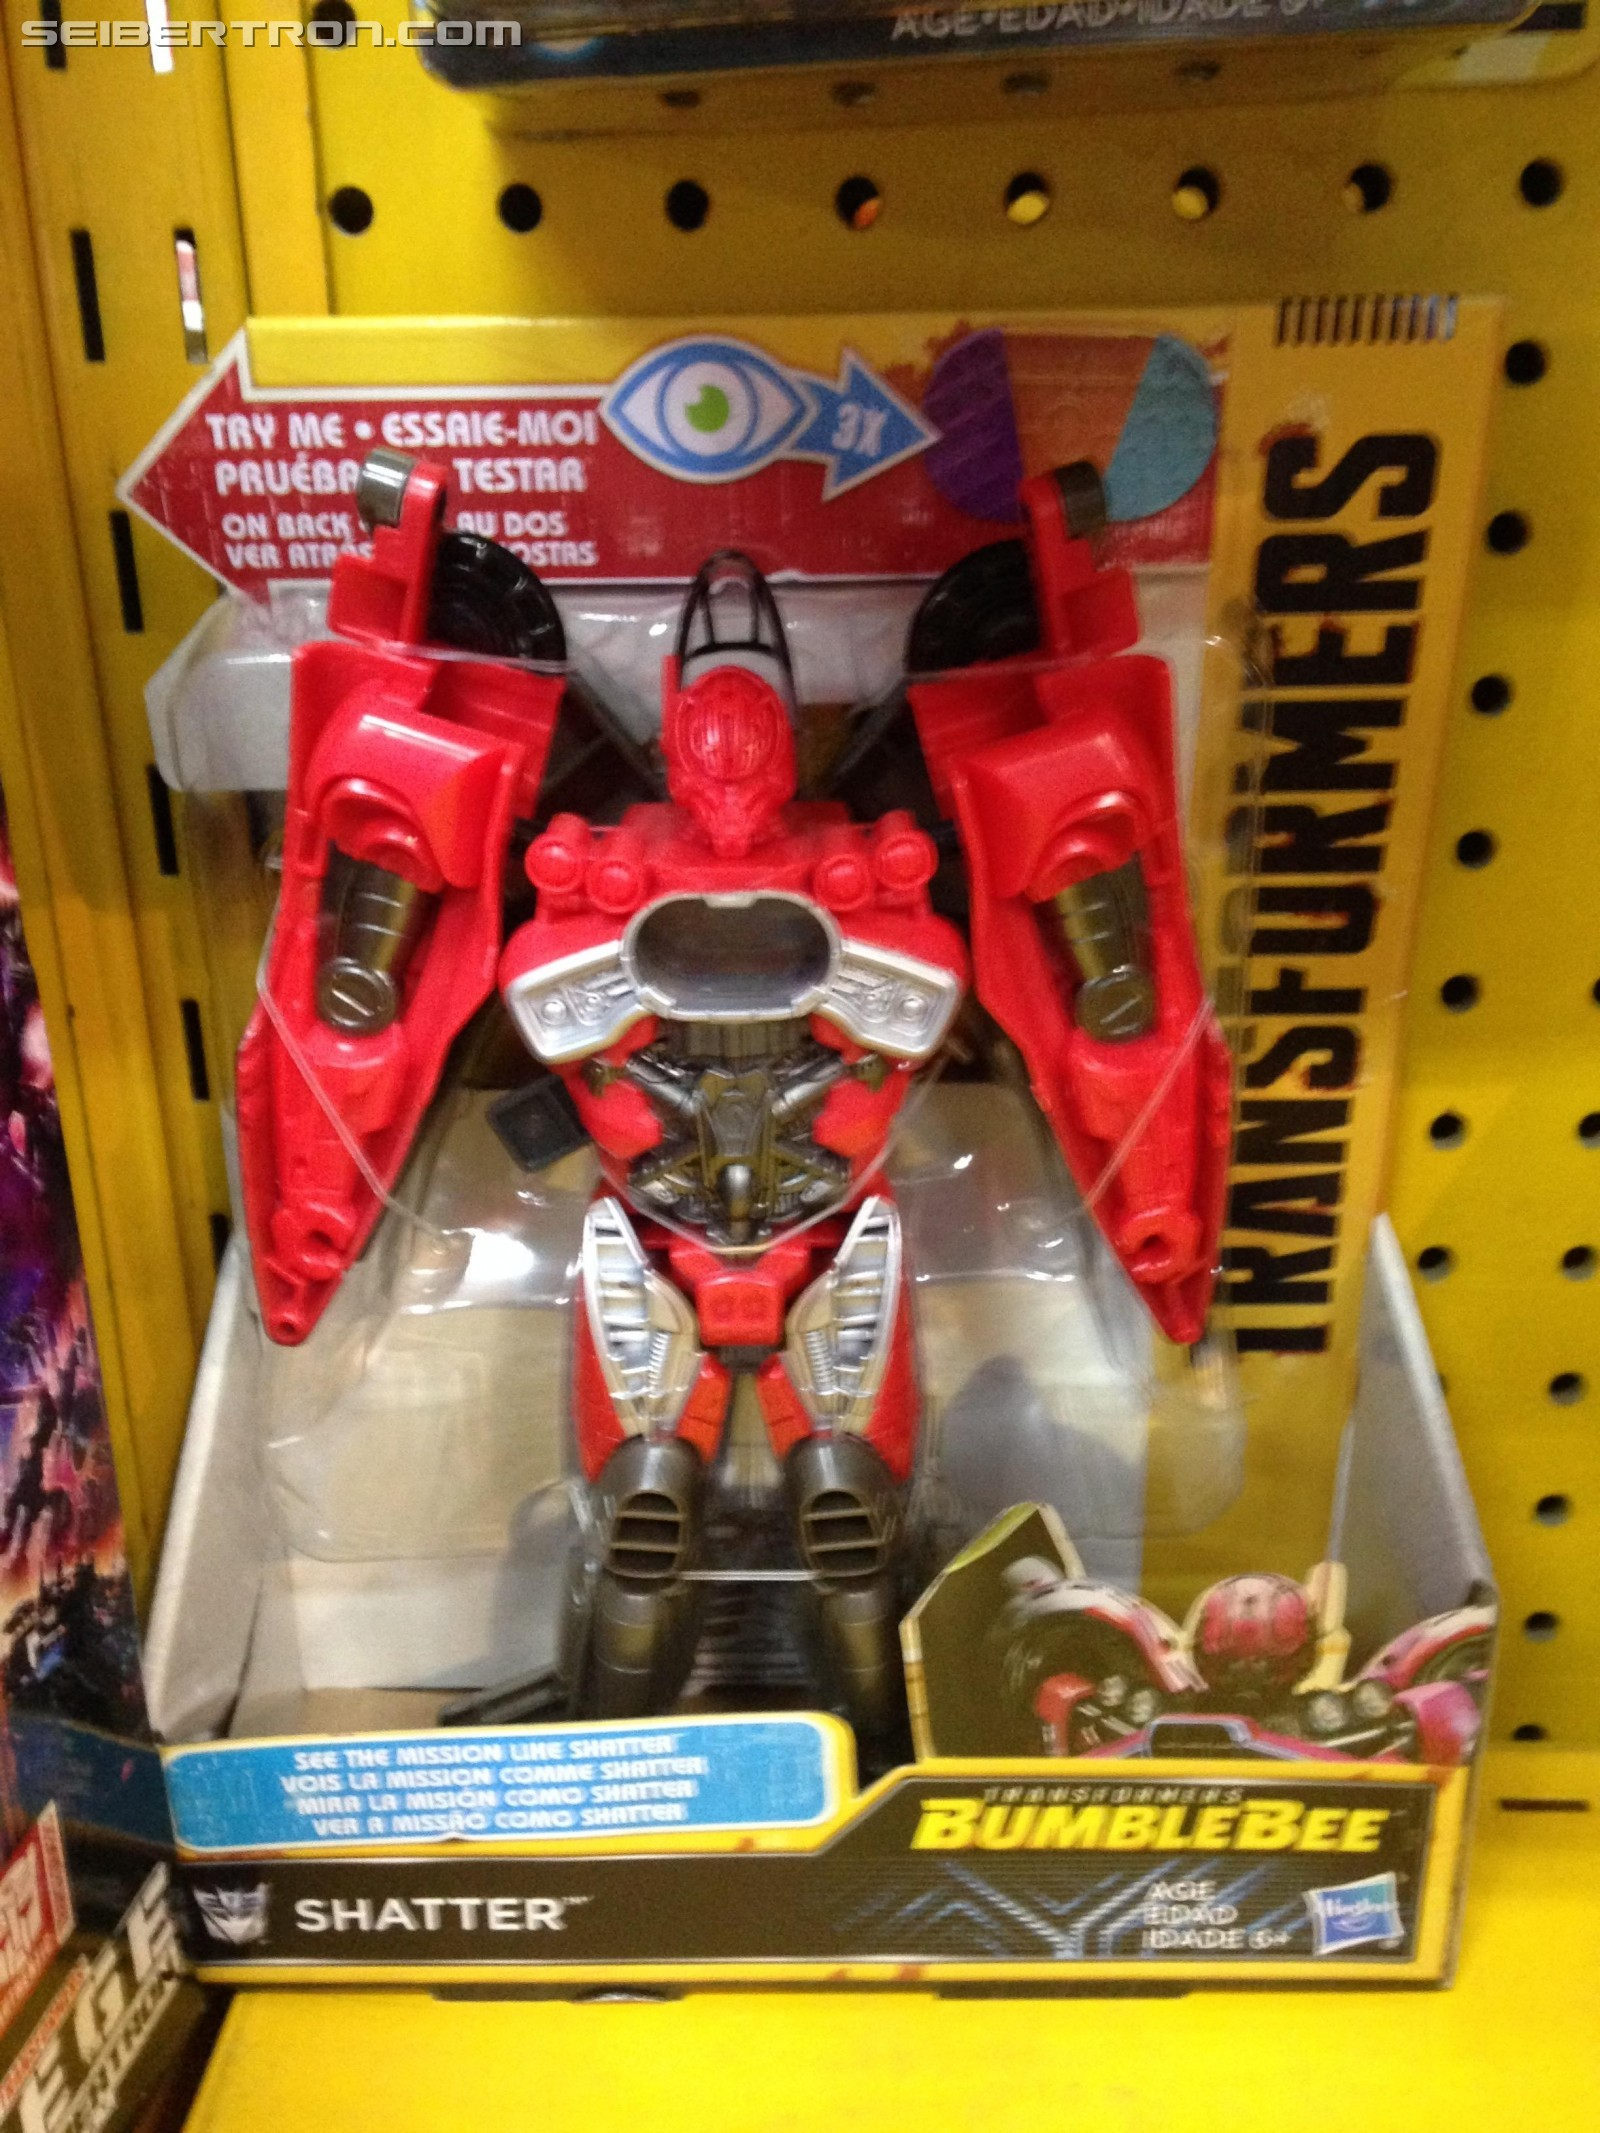 Transformers News: MPM Barricade and Bumblebee Mission Vision Toys Found in Australia